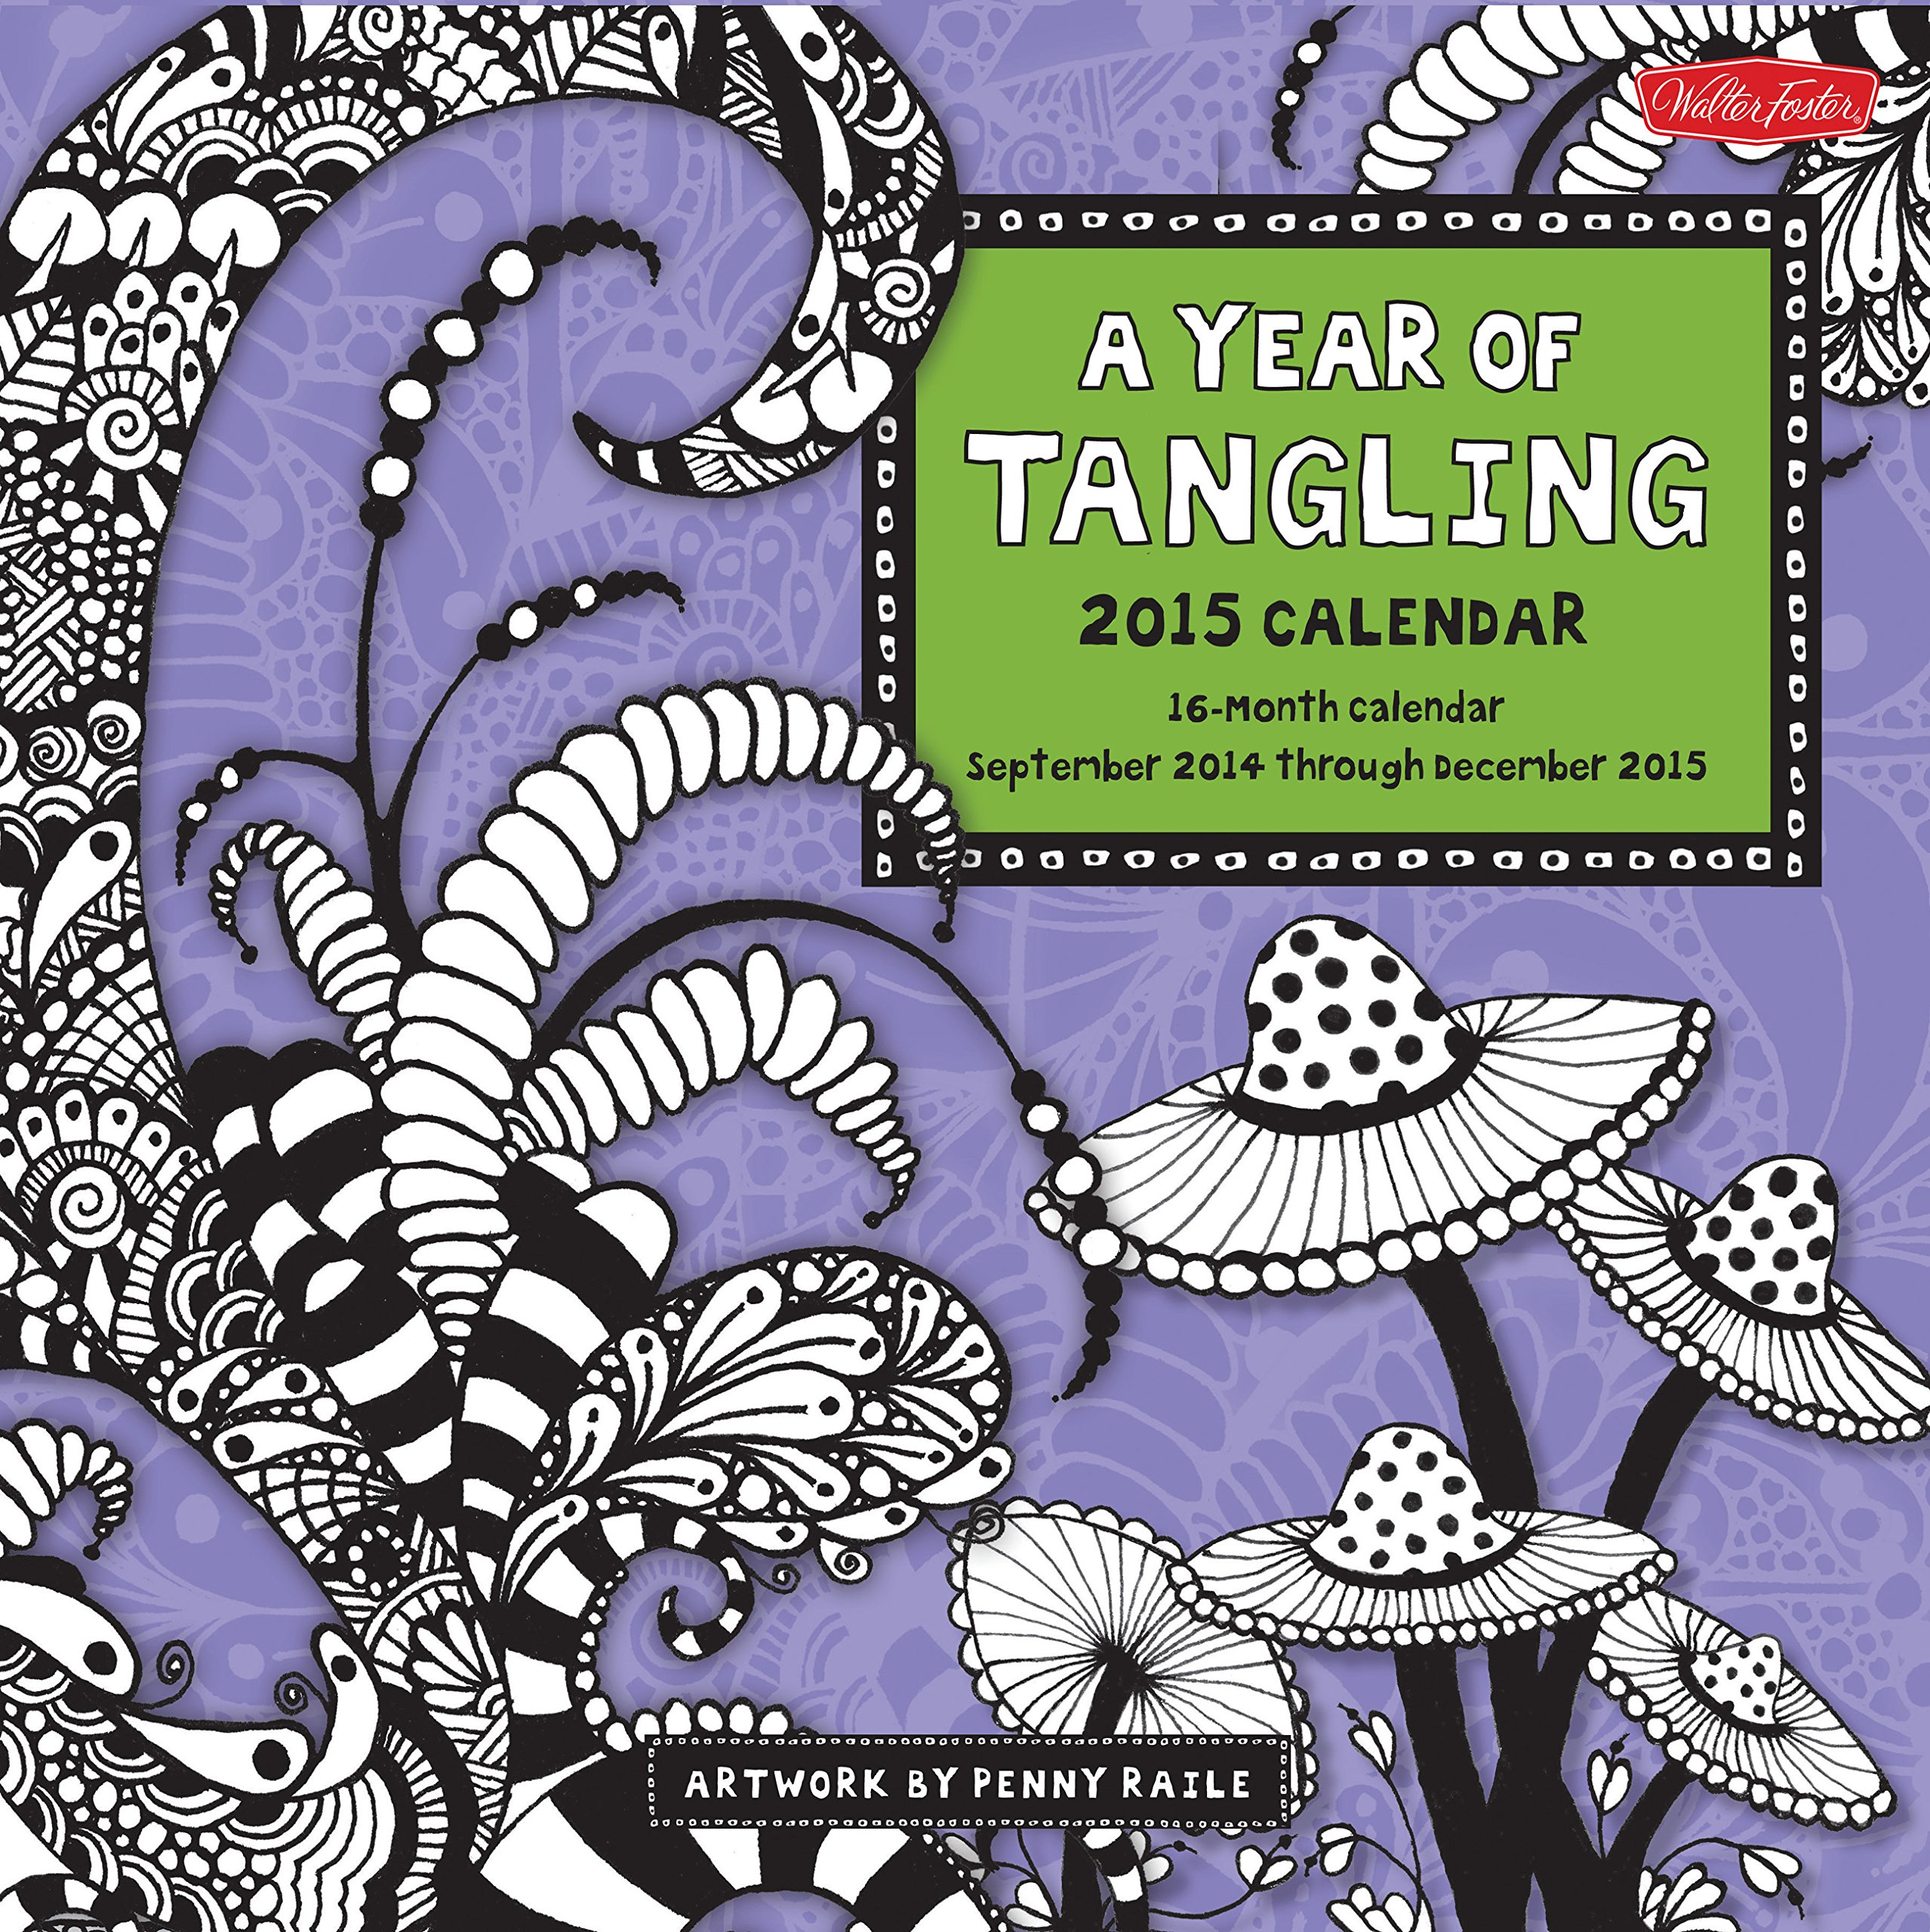 December Calendar Art : A year of tangling month calendar including september